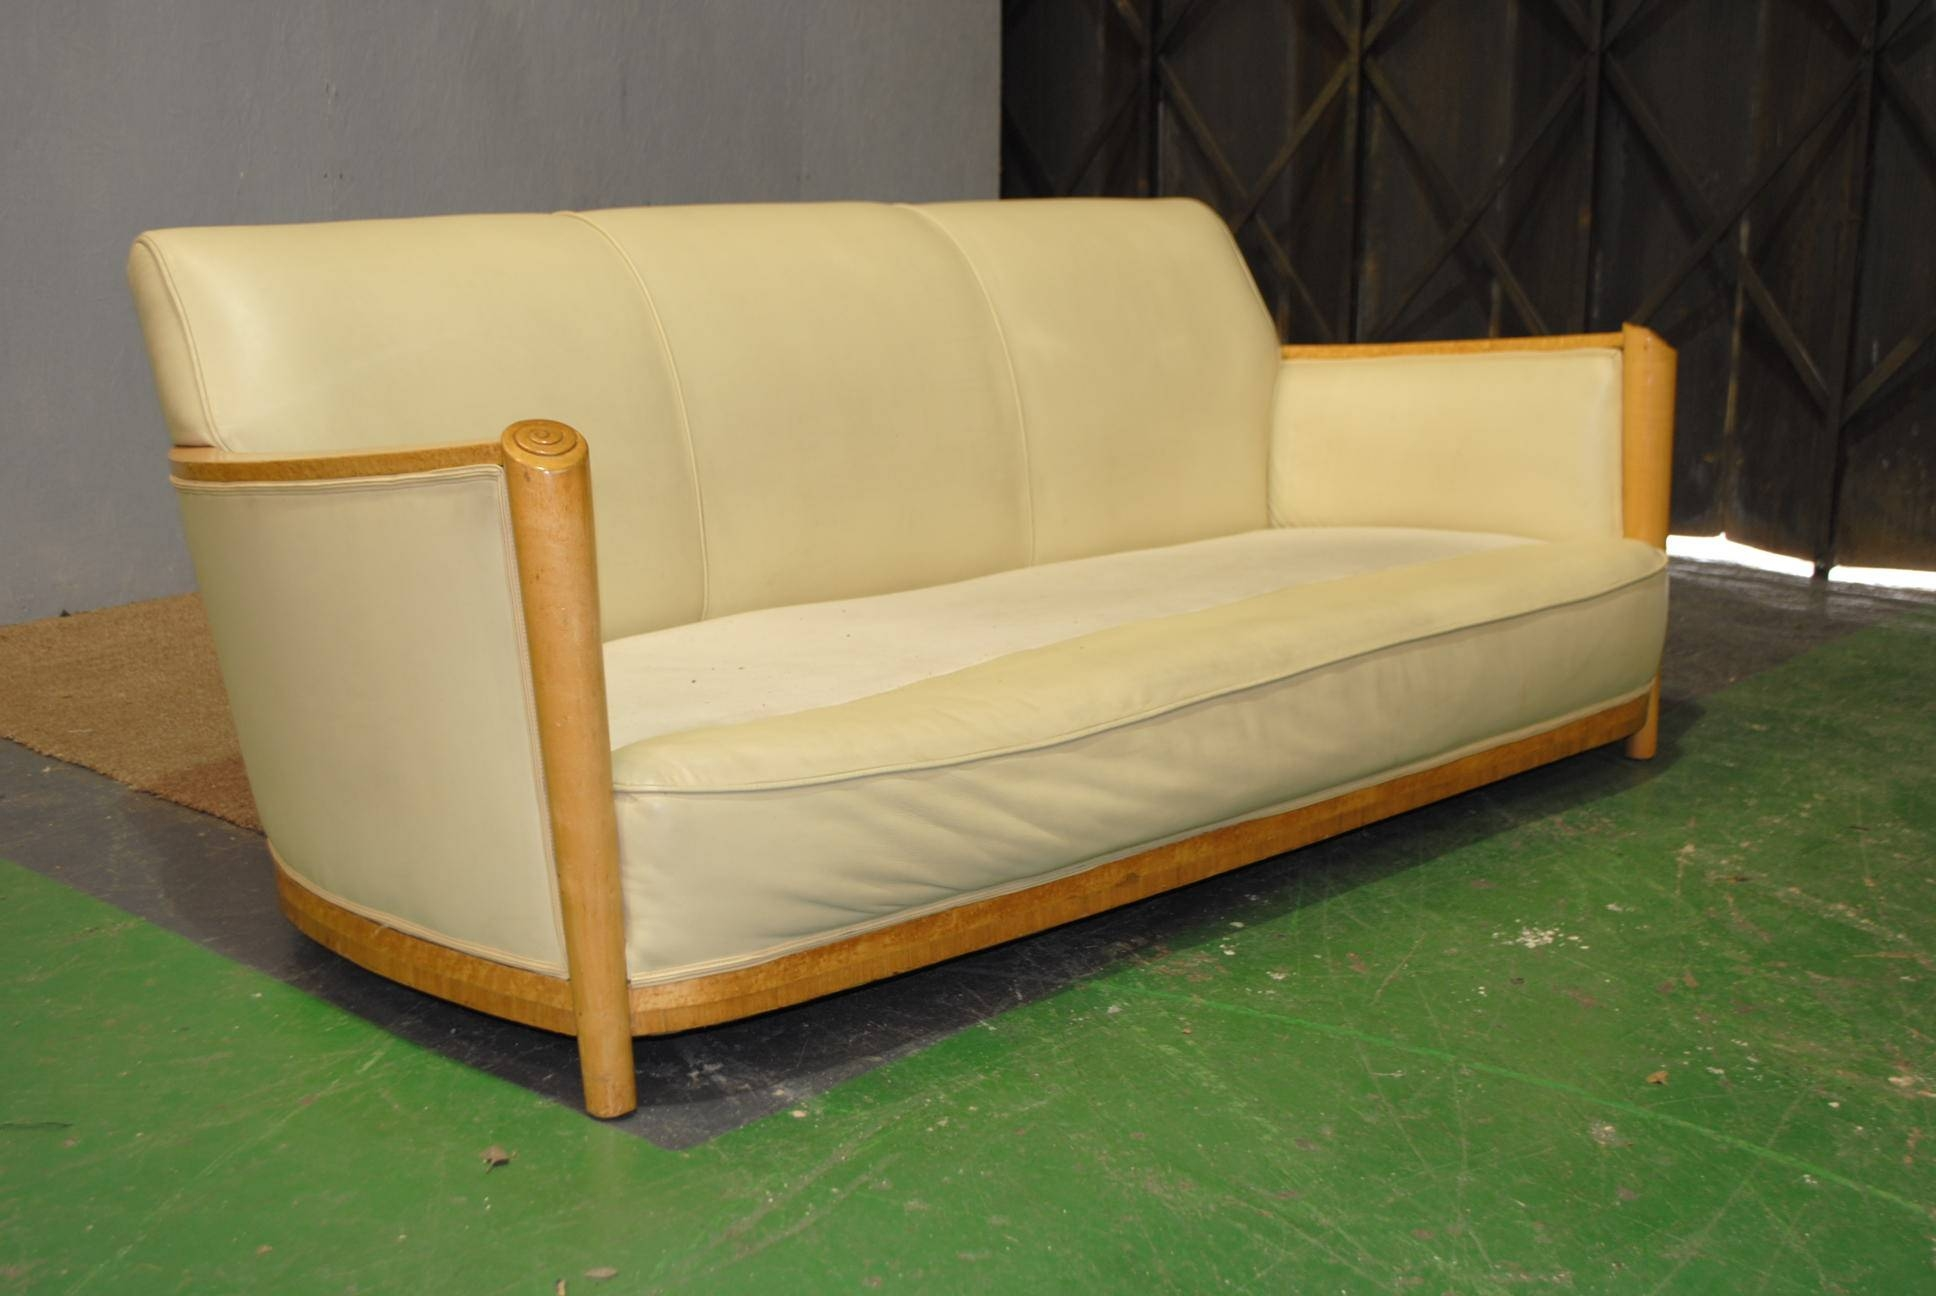 Art Deco Maurice Adams Sofa || Cloud 9, Art Deco Furniture Sales intended for Art Deco Sofa and Chairs (Image 4 of 15)